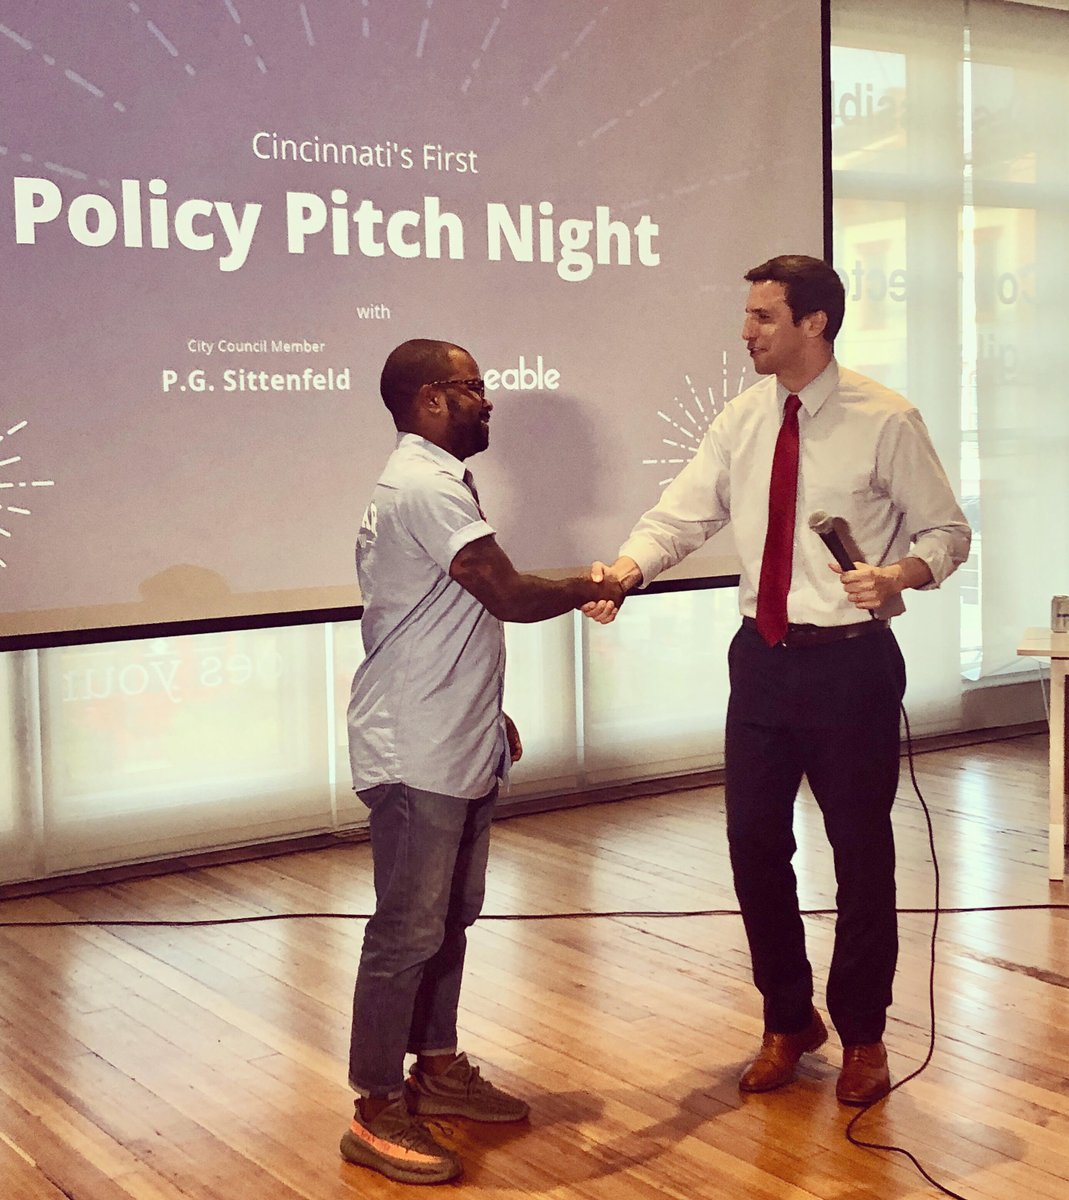 Very fun, inspiring evening hosting Cincinnati&#39;s first-ever Policy Pitch Night. The winning idea - decided democratically by vote of the sizable audience in attendance - came from @DerrickBraziel about how City Hall can better promote minority business growth and innovation. <br>http://pic.twitter.com/oQD4h9Z6I8